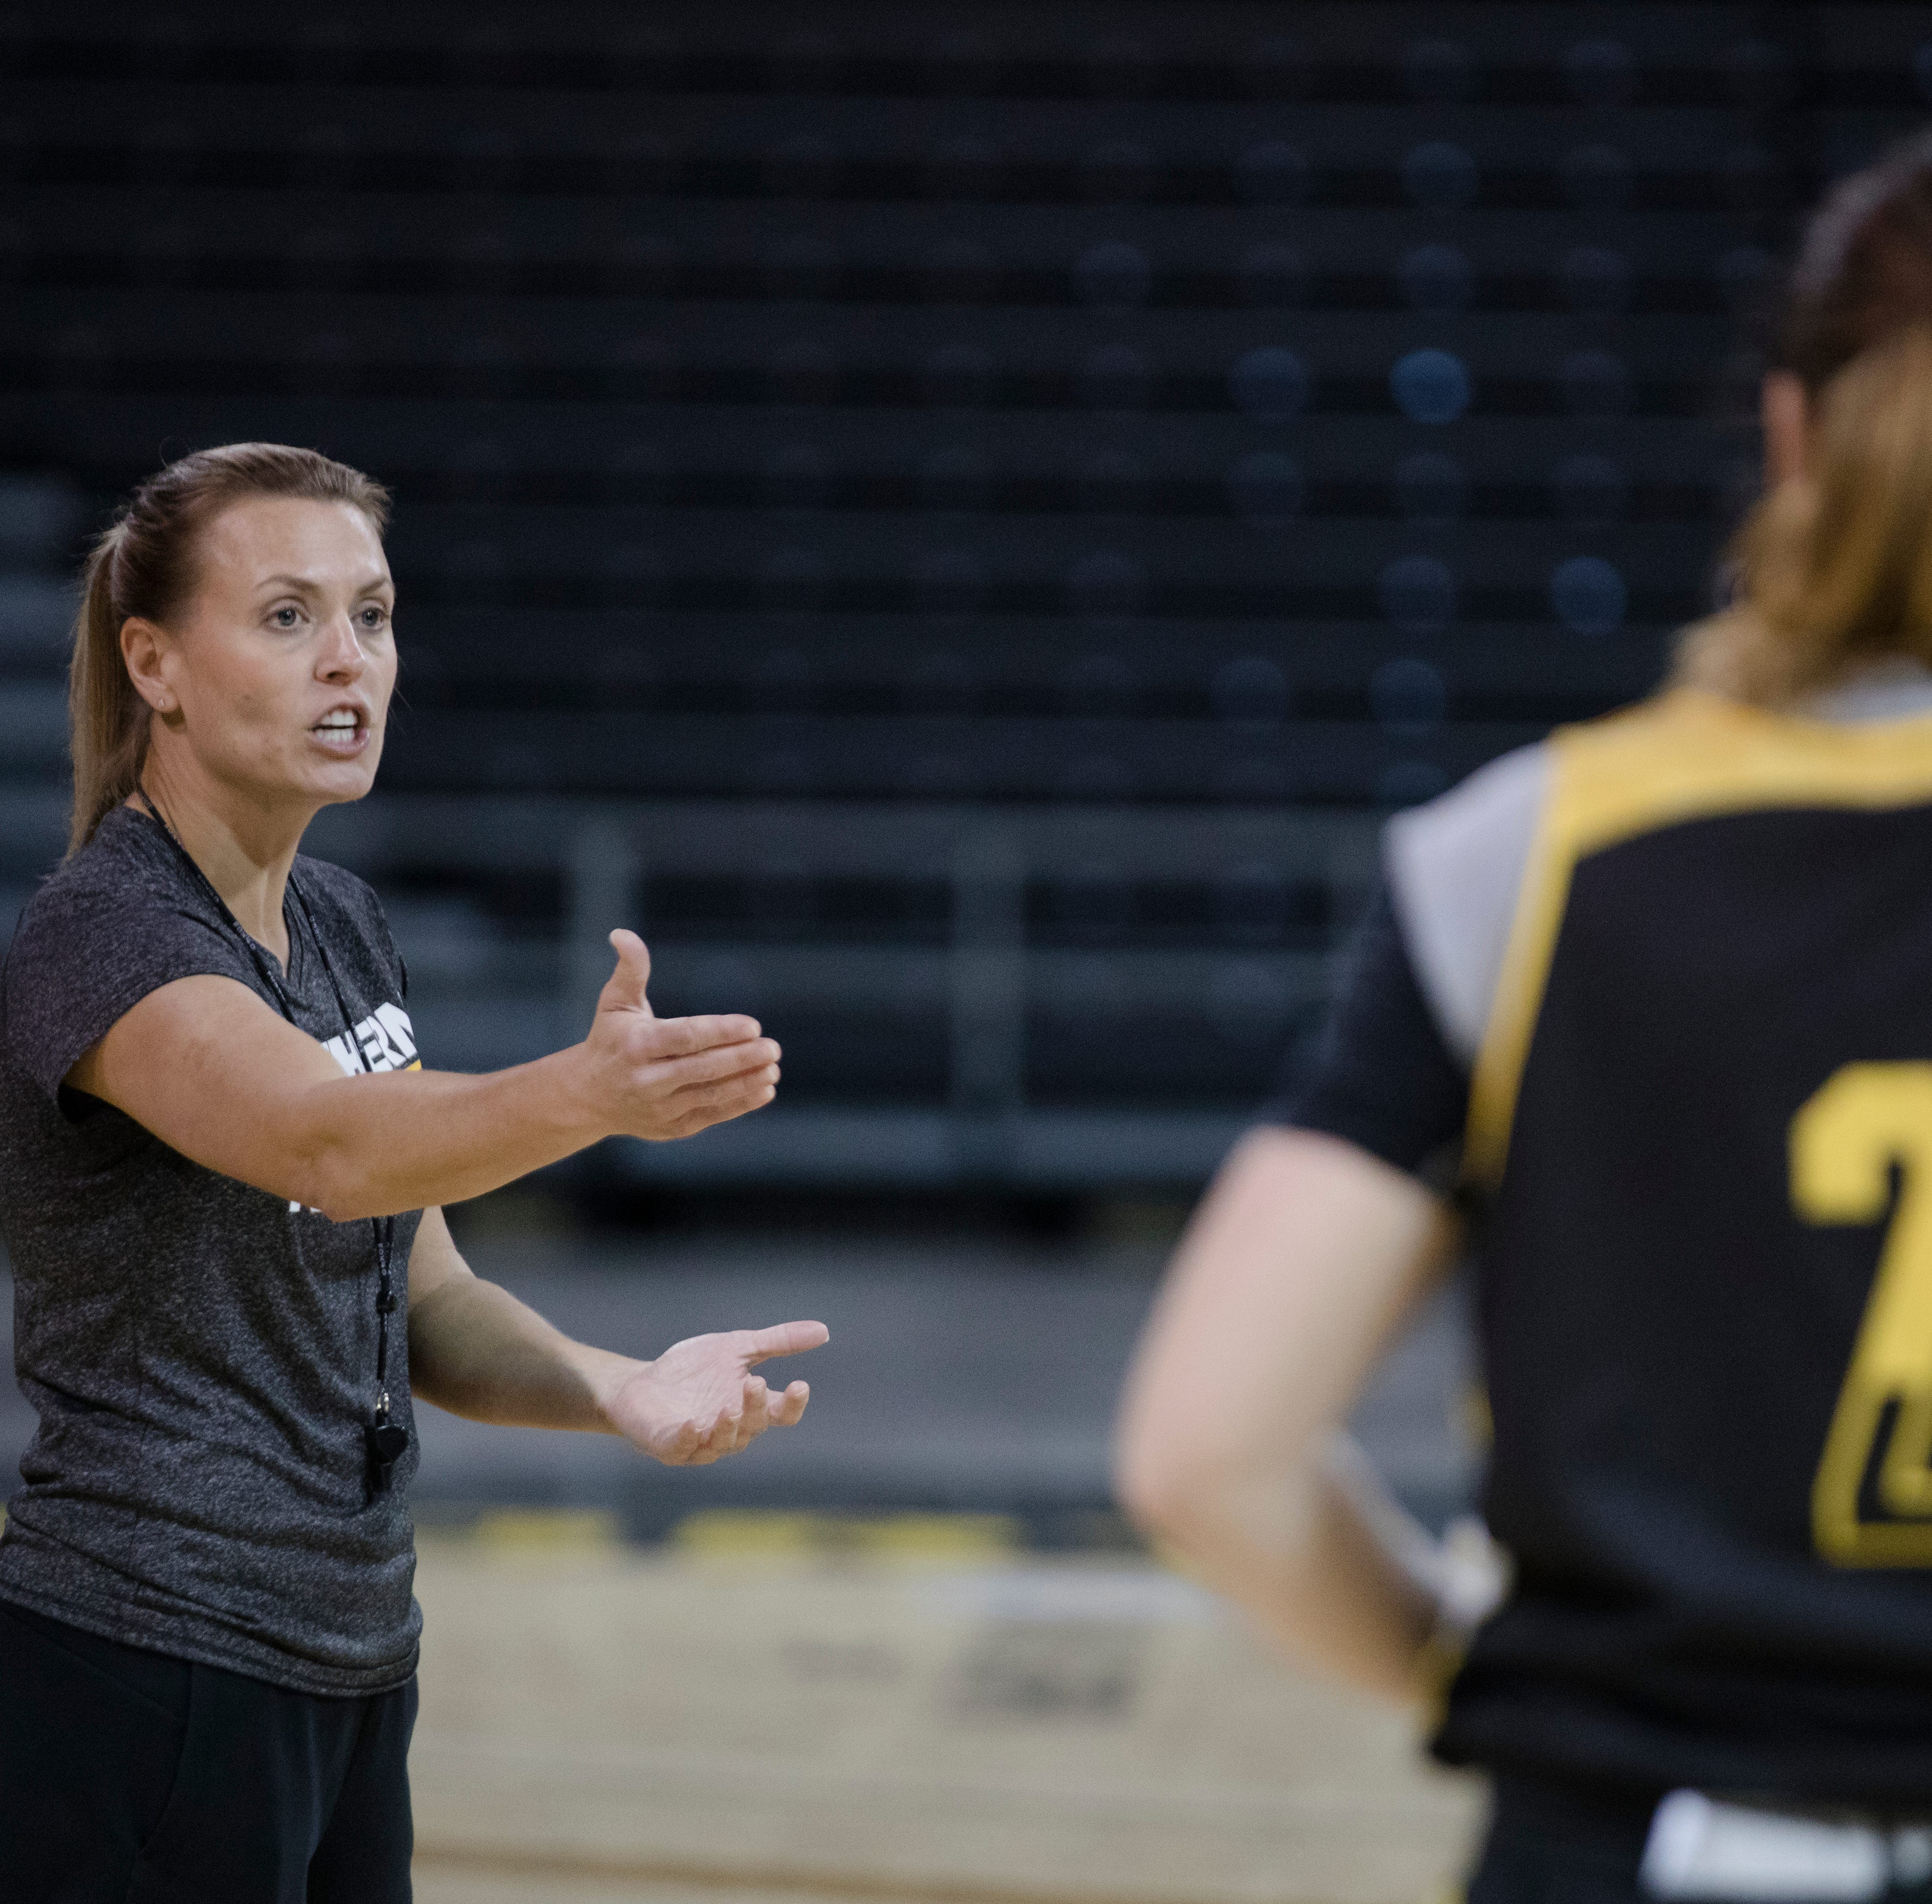 NKU opens external review of women's basketball program after 'new concerns' from players